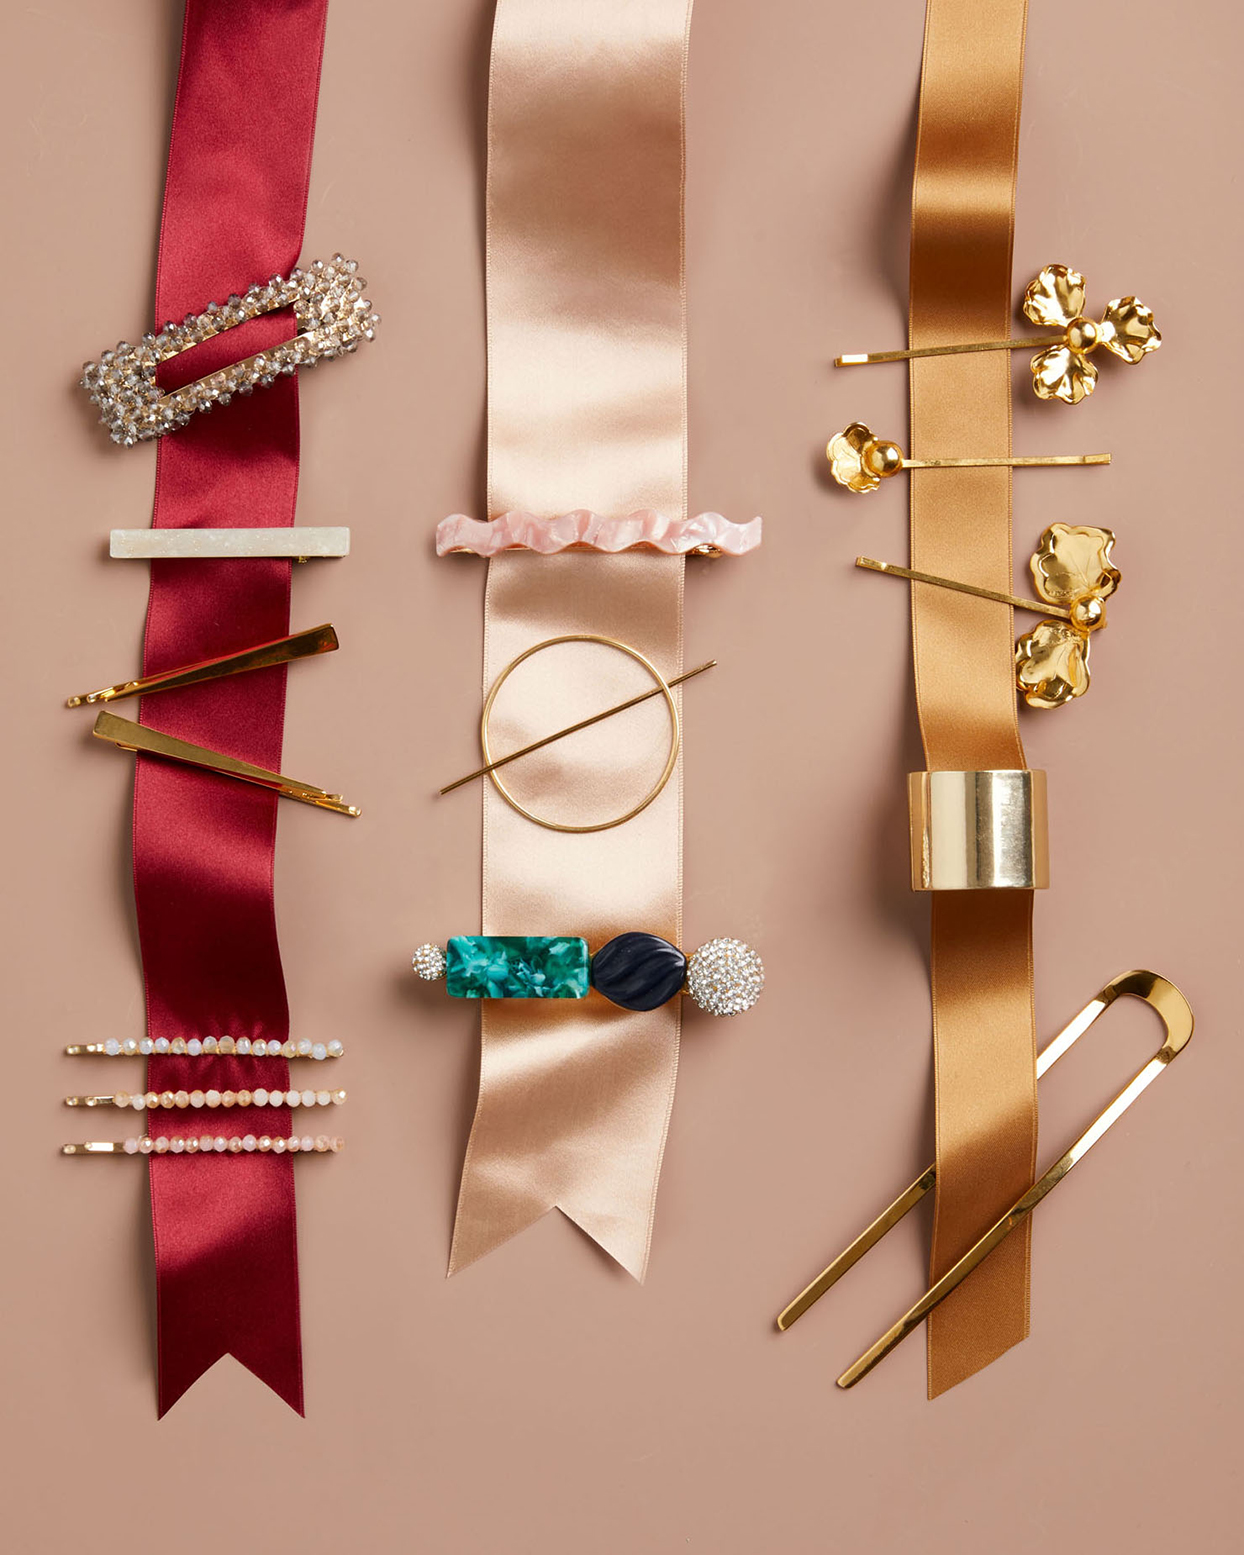 crown jewel hair accessories and ribbons